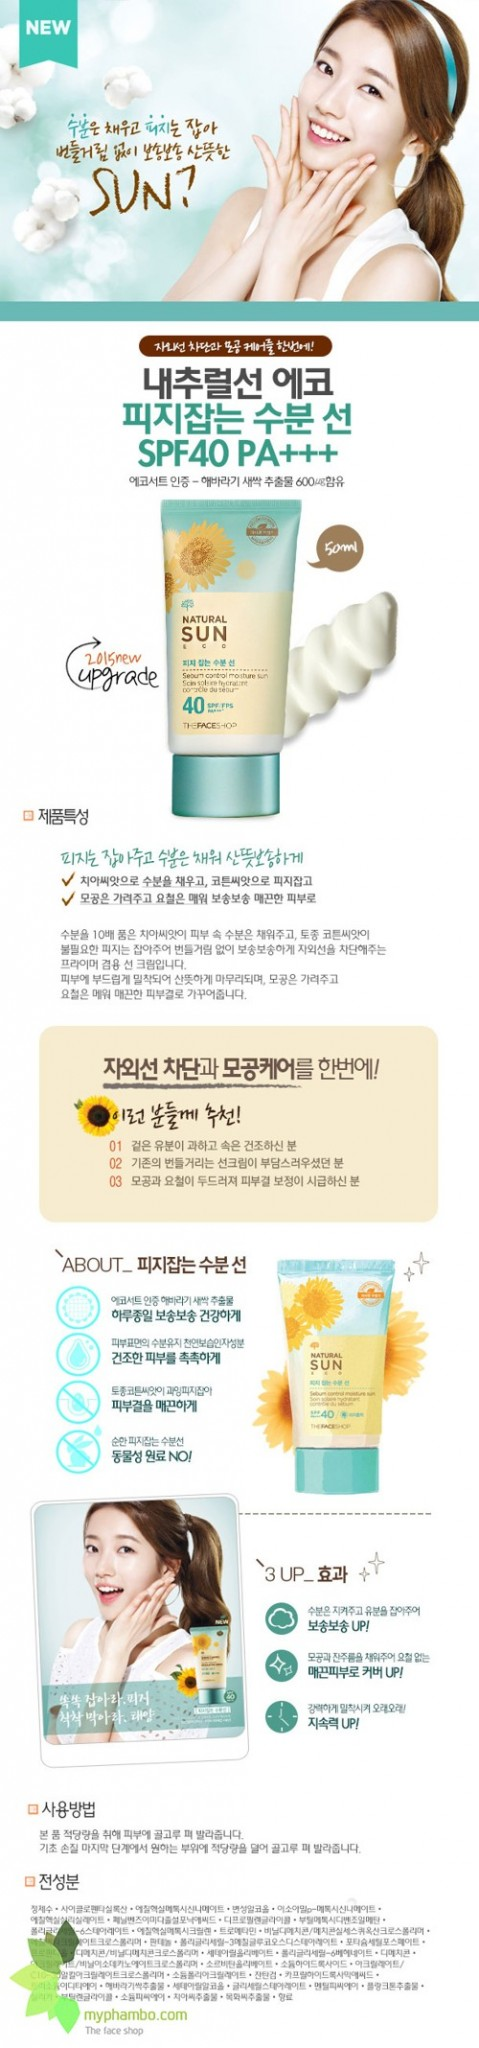 Kem chong nang The Face Shop Sebum Control Moisture Sun - Kiem soat ba nhon Natural Sun ECO (7)